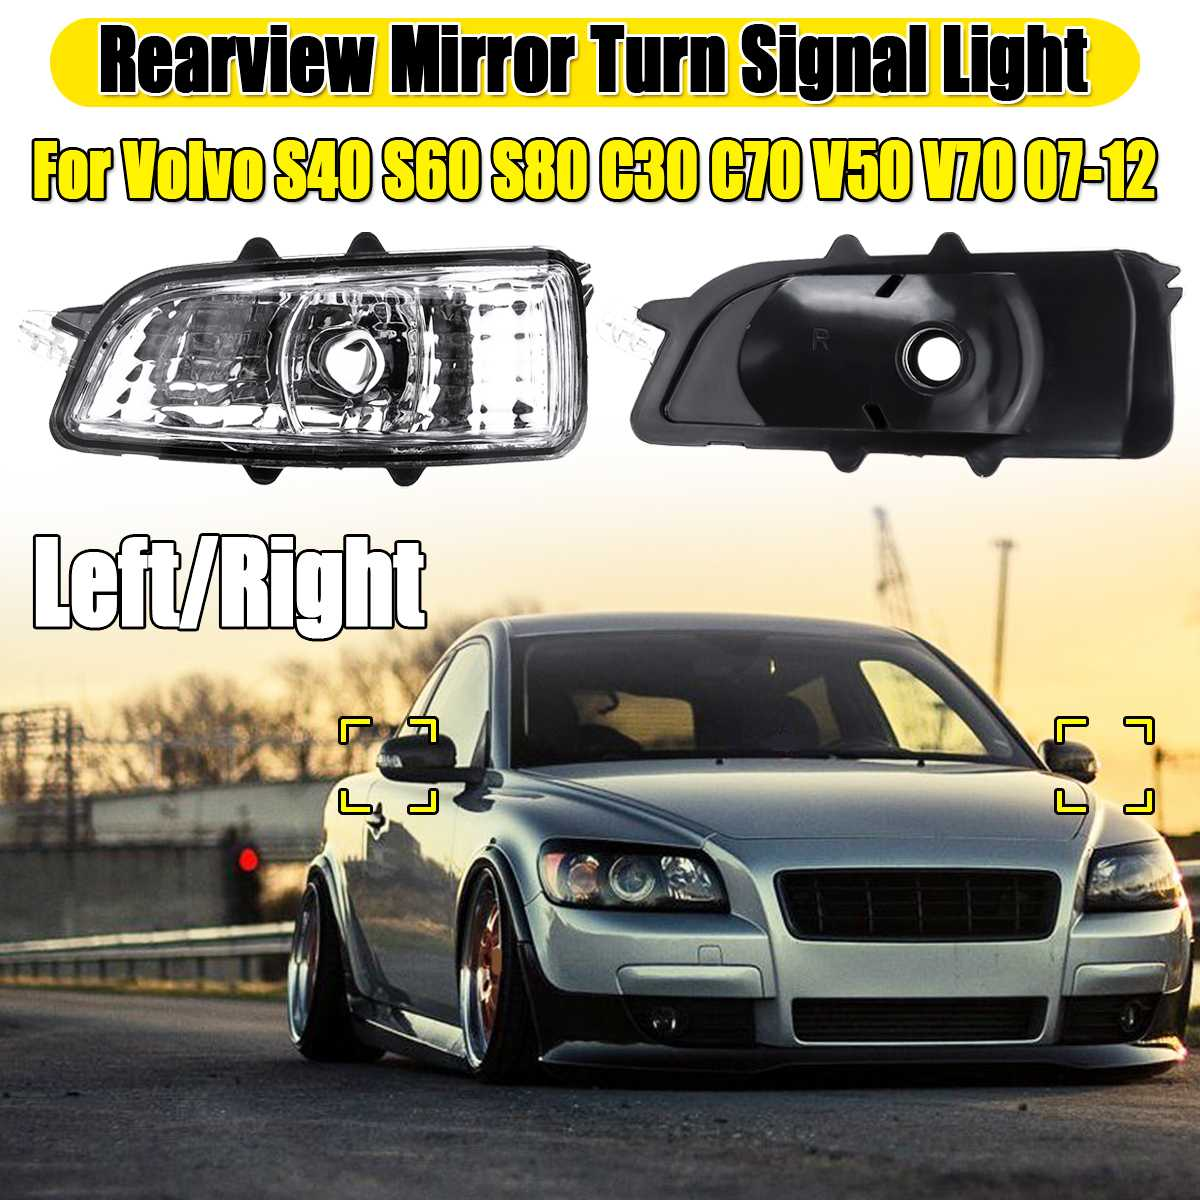 Left/Right Rearview Mirror Lights For Volvo S40 S60 S80 C30 C70 V50 V70  Turn Signal Light Rearview Mirror Light Without Bulb